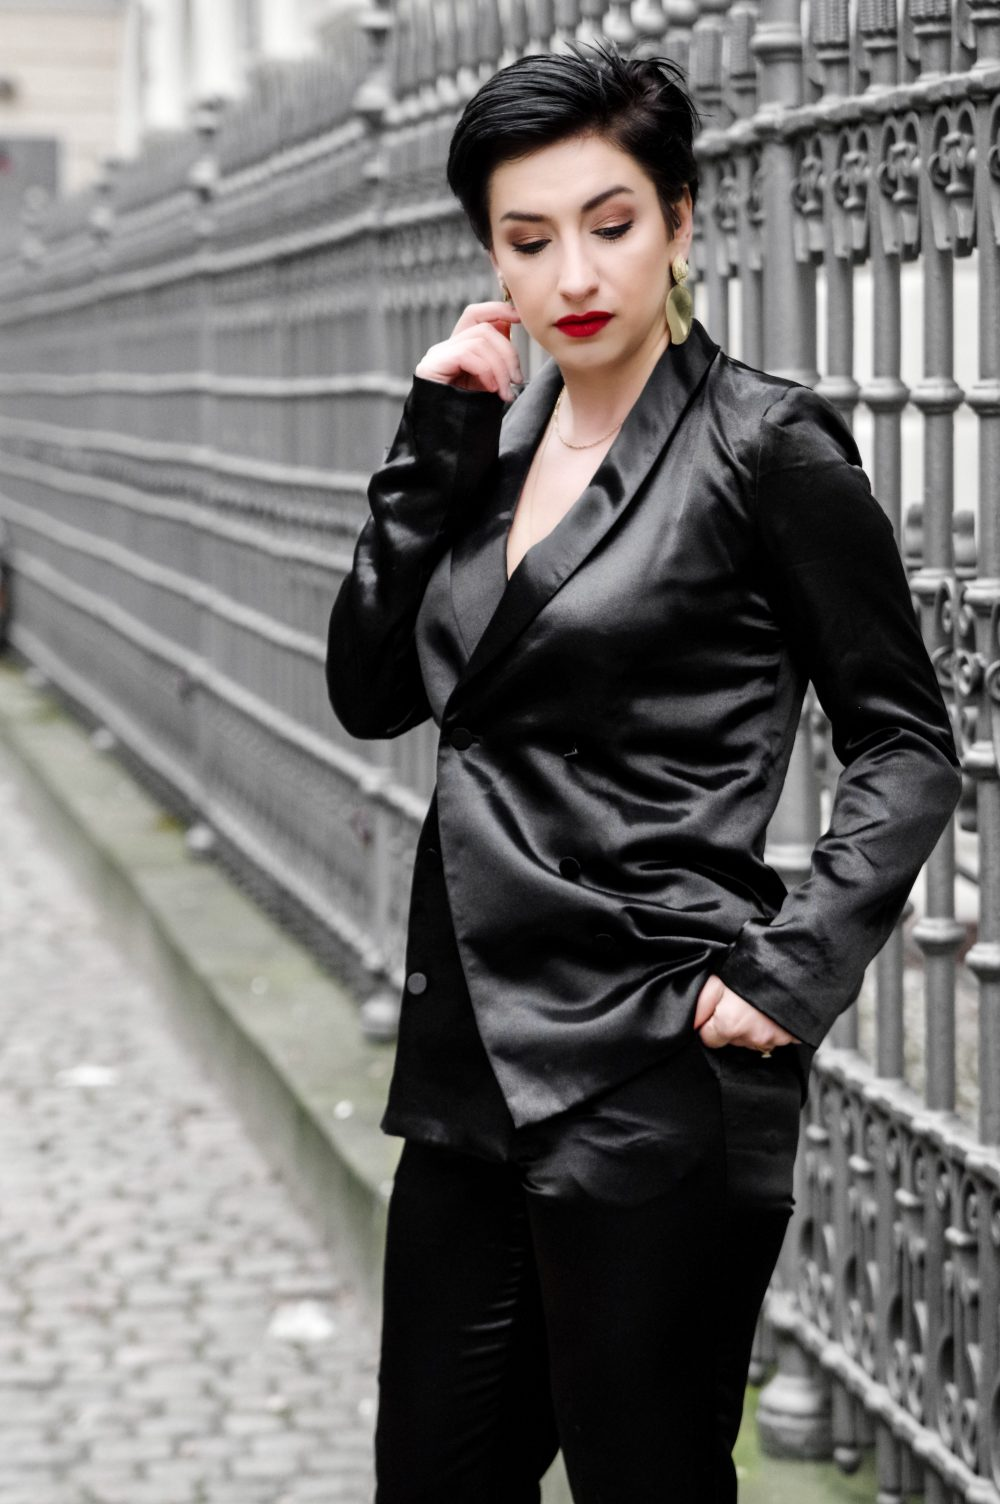 valentines day outfit, date night outfit, black satin suit, elegant, chic, classy outfit, short hairstyle 2